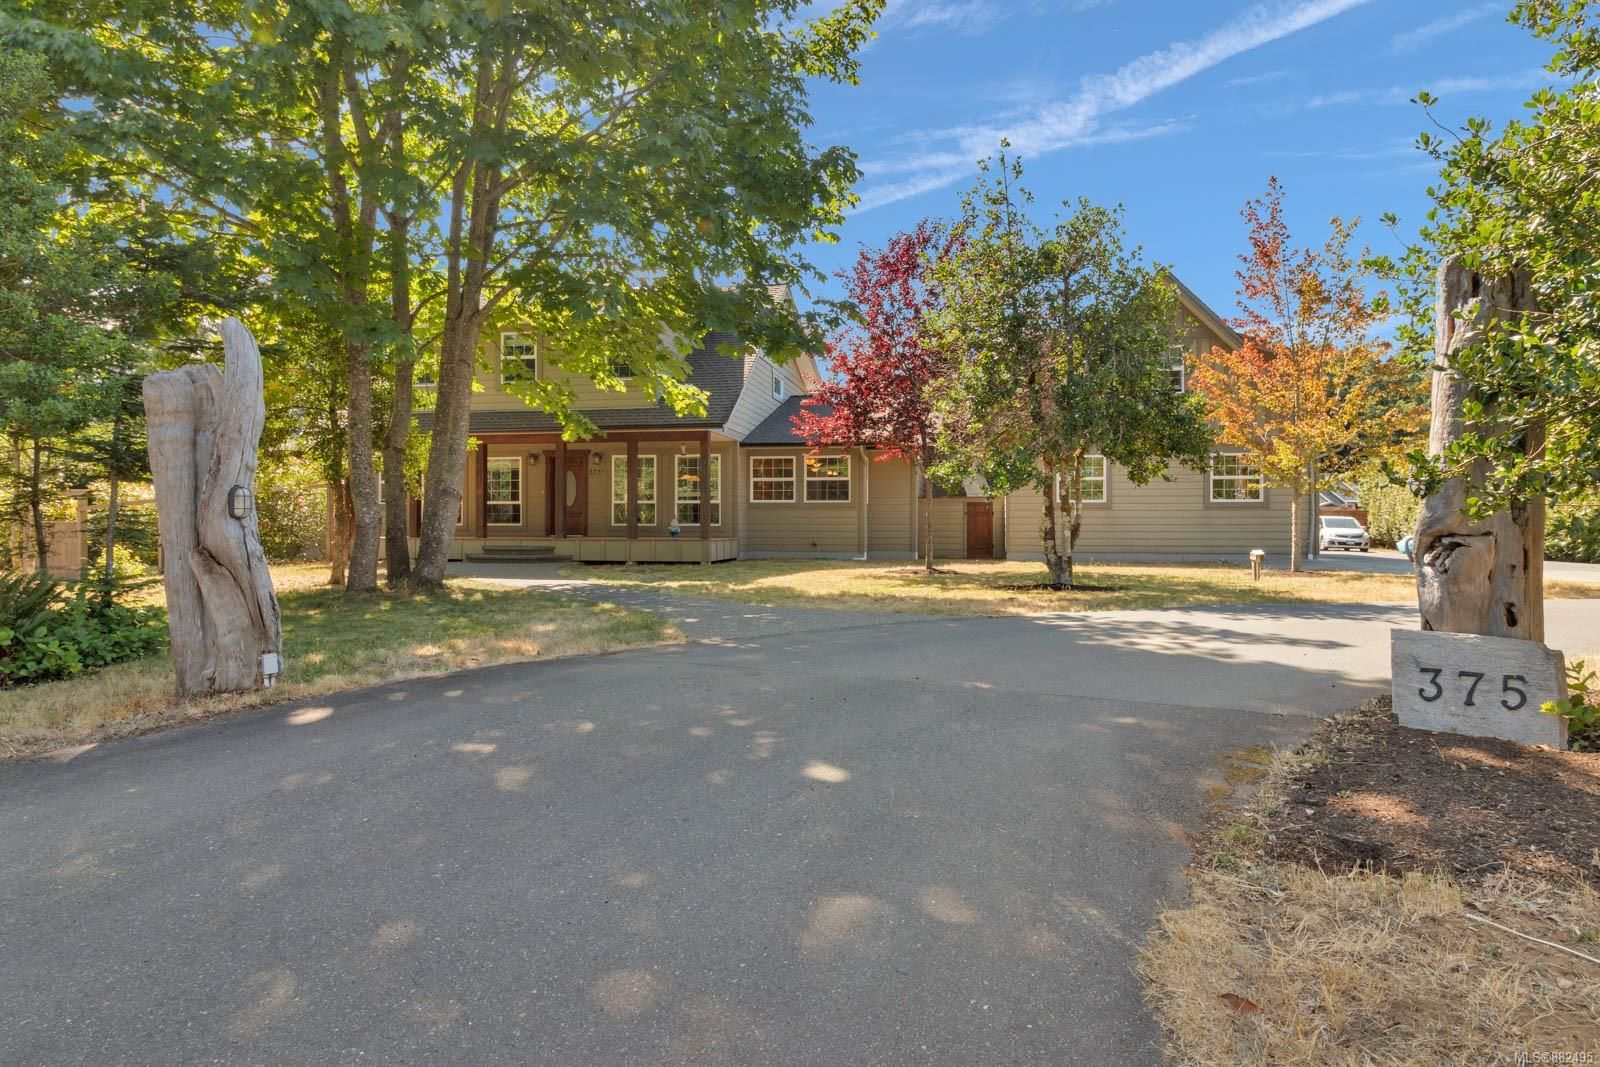 Photo 1: Photos: 375 Butchers Rd in : CV Comox (Town of) House for sale (Comox Valley)  : MLS®# 882495